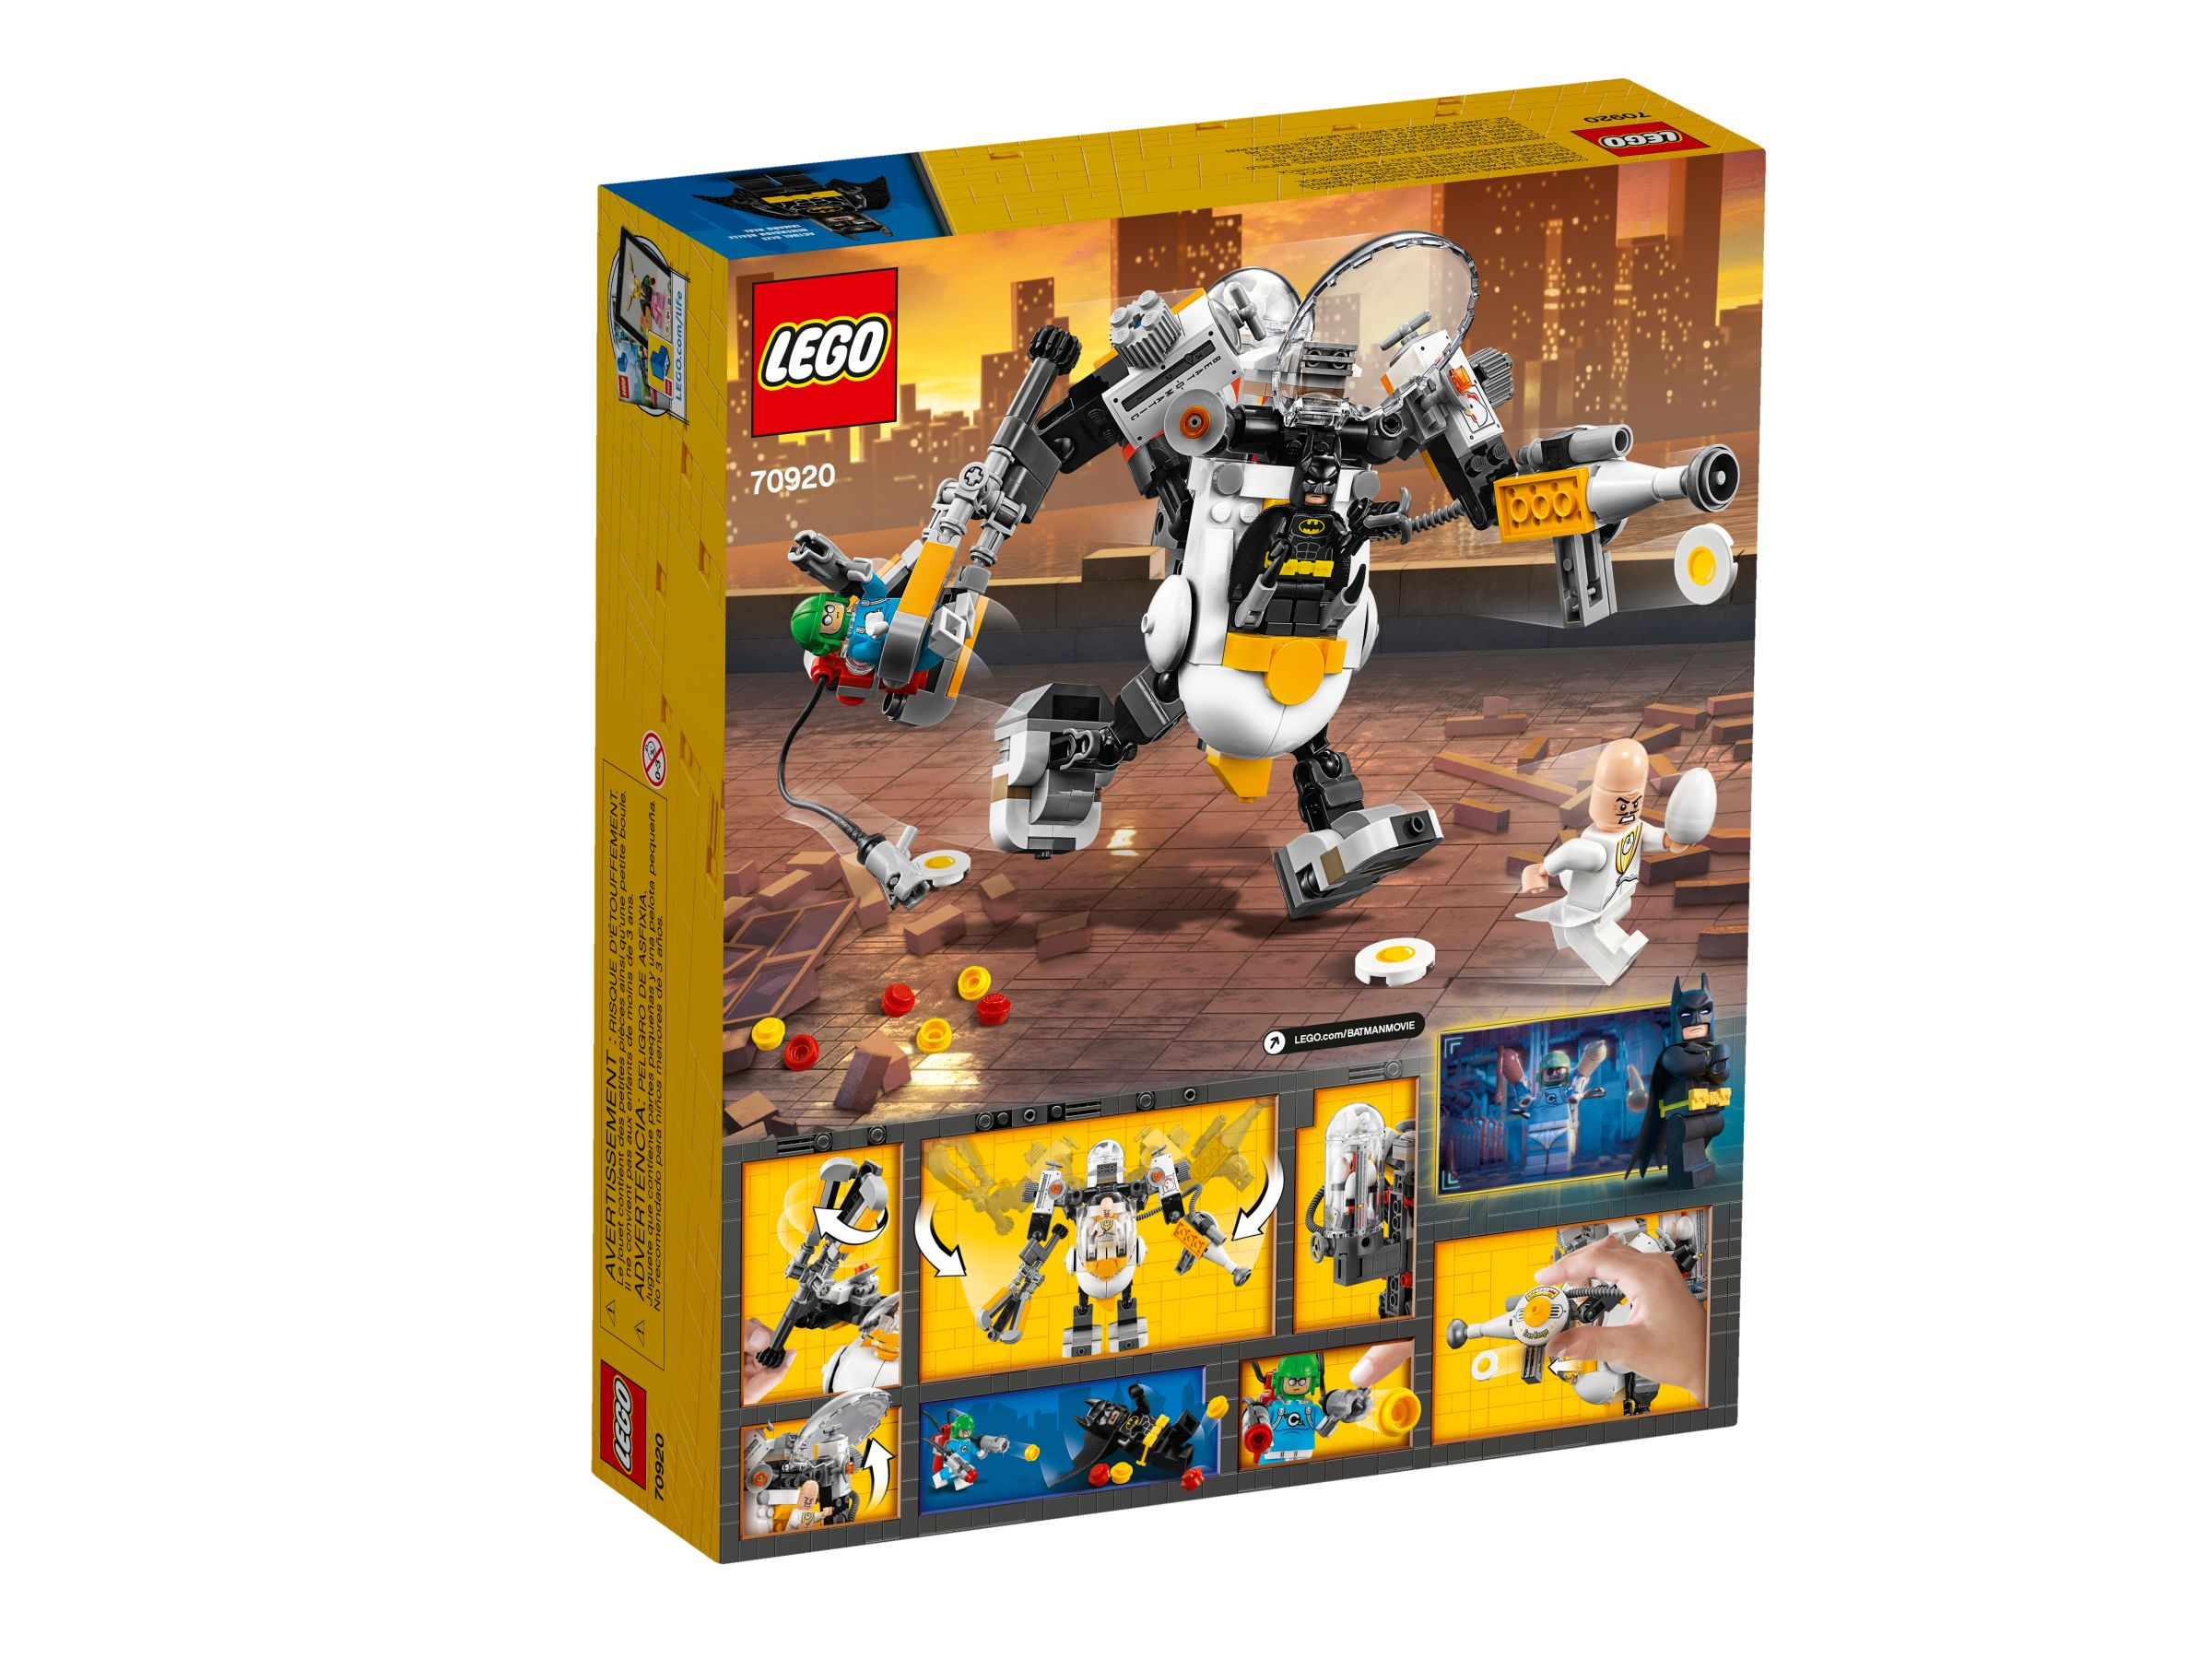 LEGO The LEGO Batman Movie 70920 Egghead bei der Roboter-Essenschlacht LEGO_70920_alt2.jpg